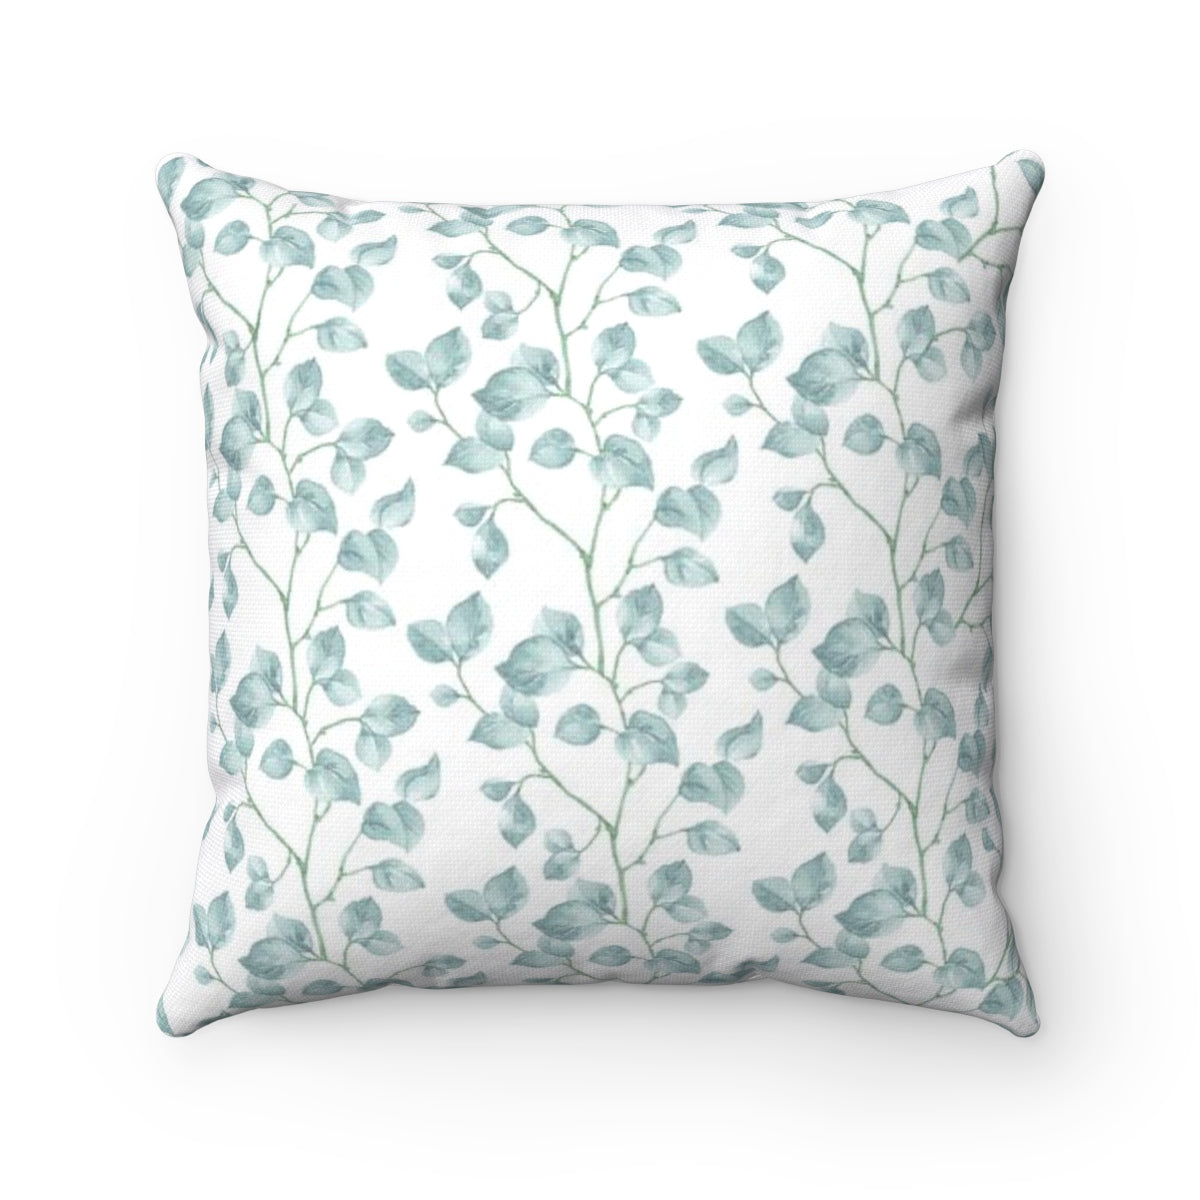 Light Blue Throw Pillow - Liz Kapiloto Art & Design